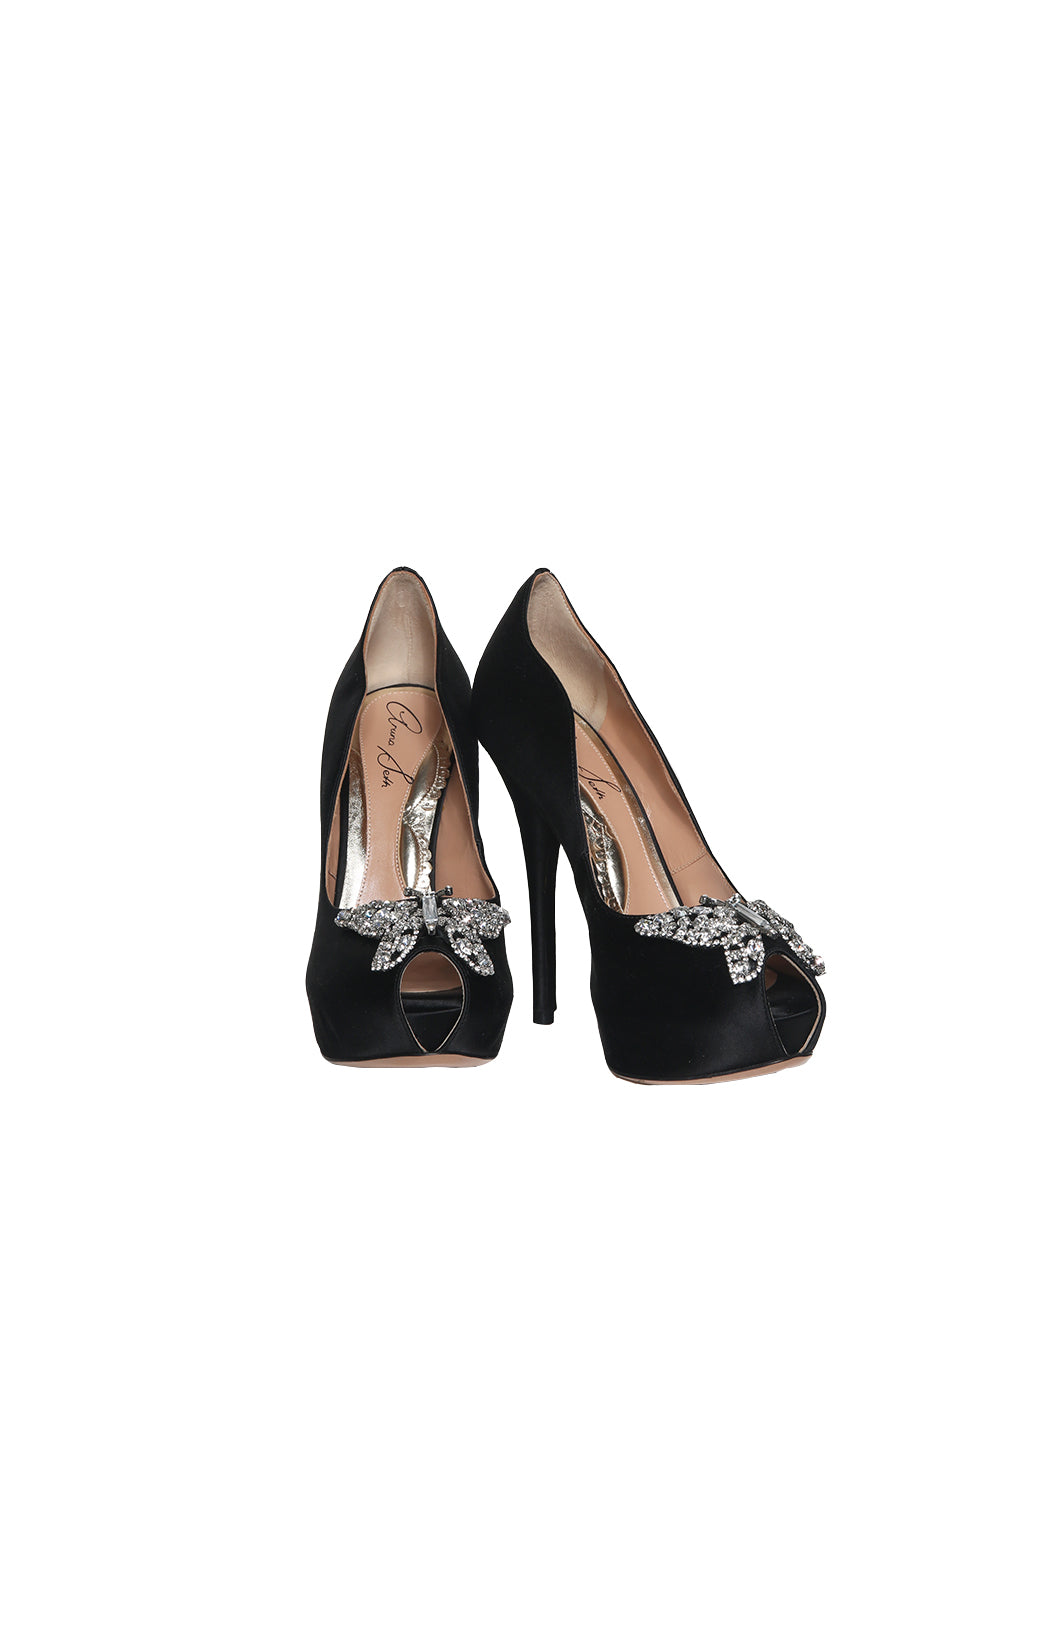 Front view of ARUNA SETH Pumps Size: 38.5 (US 8.5)